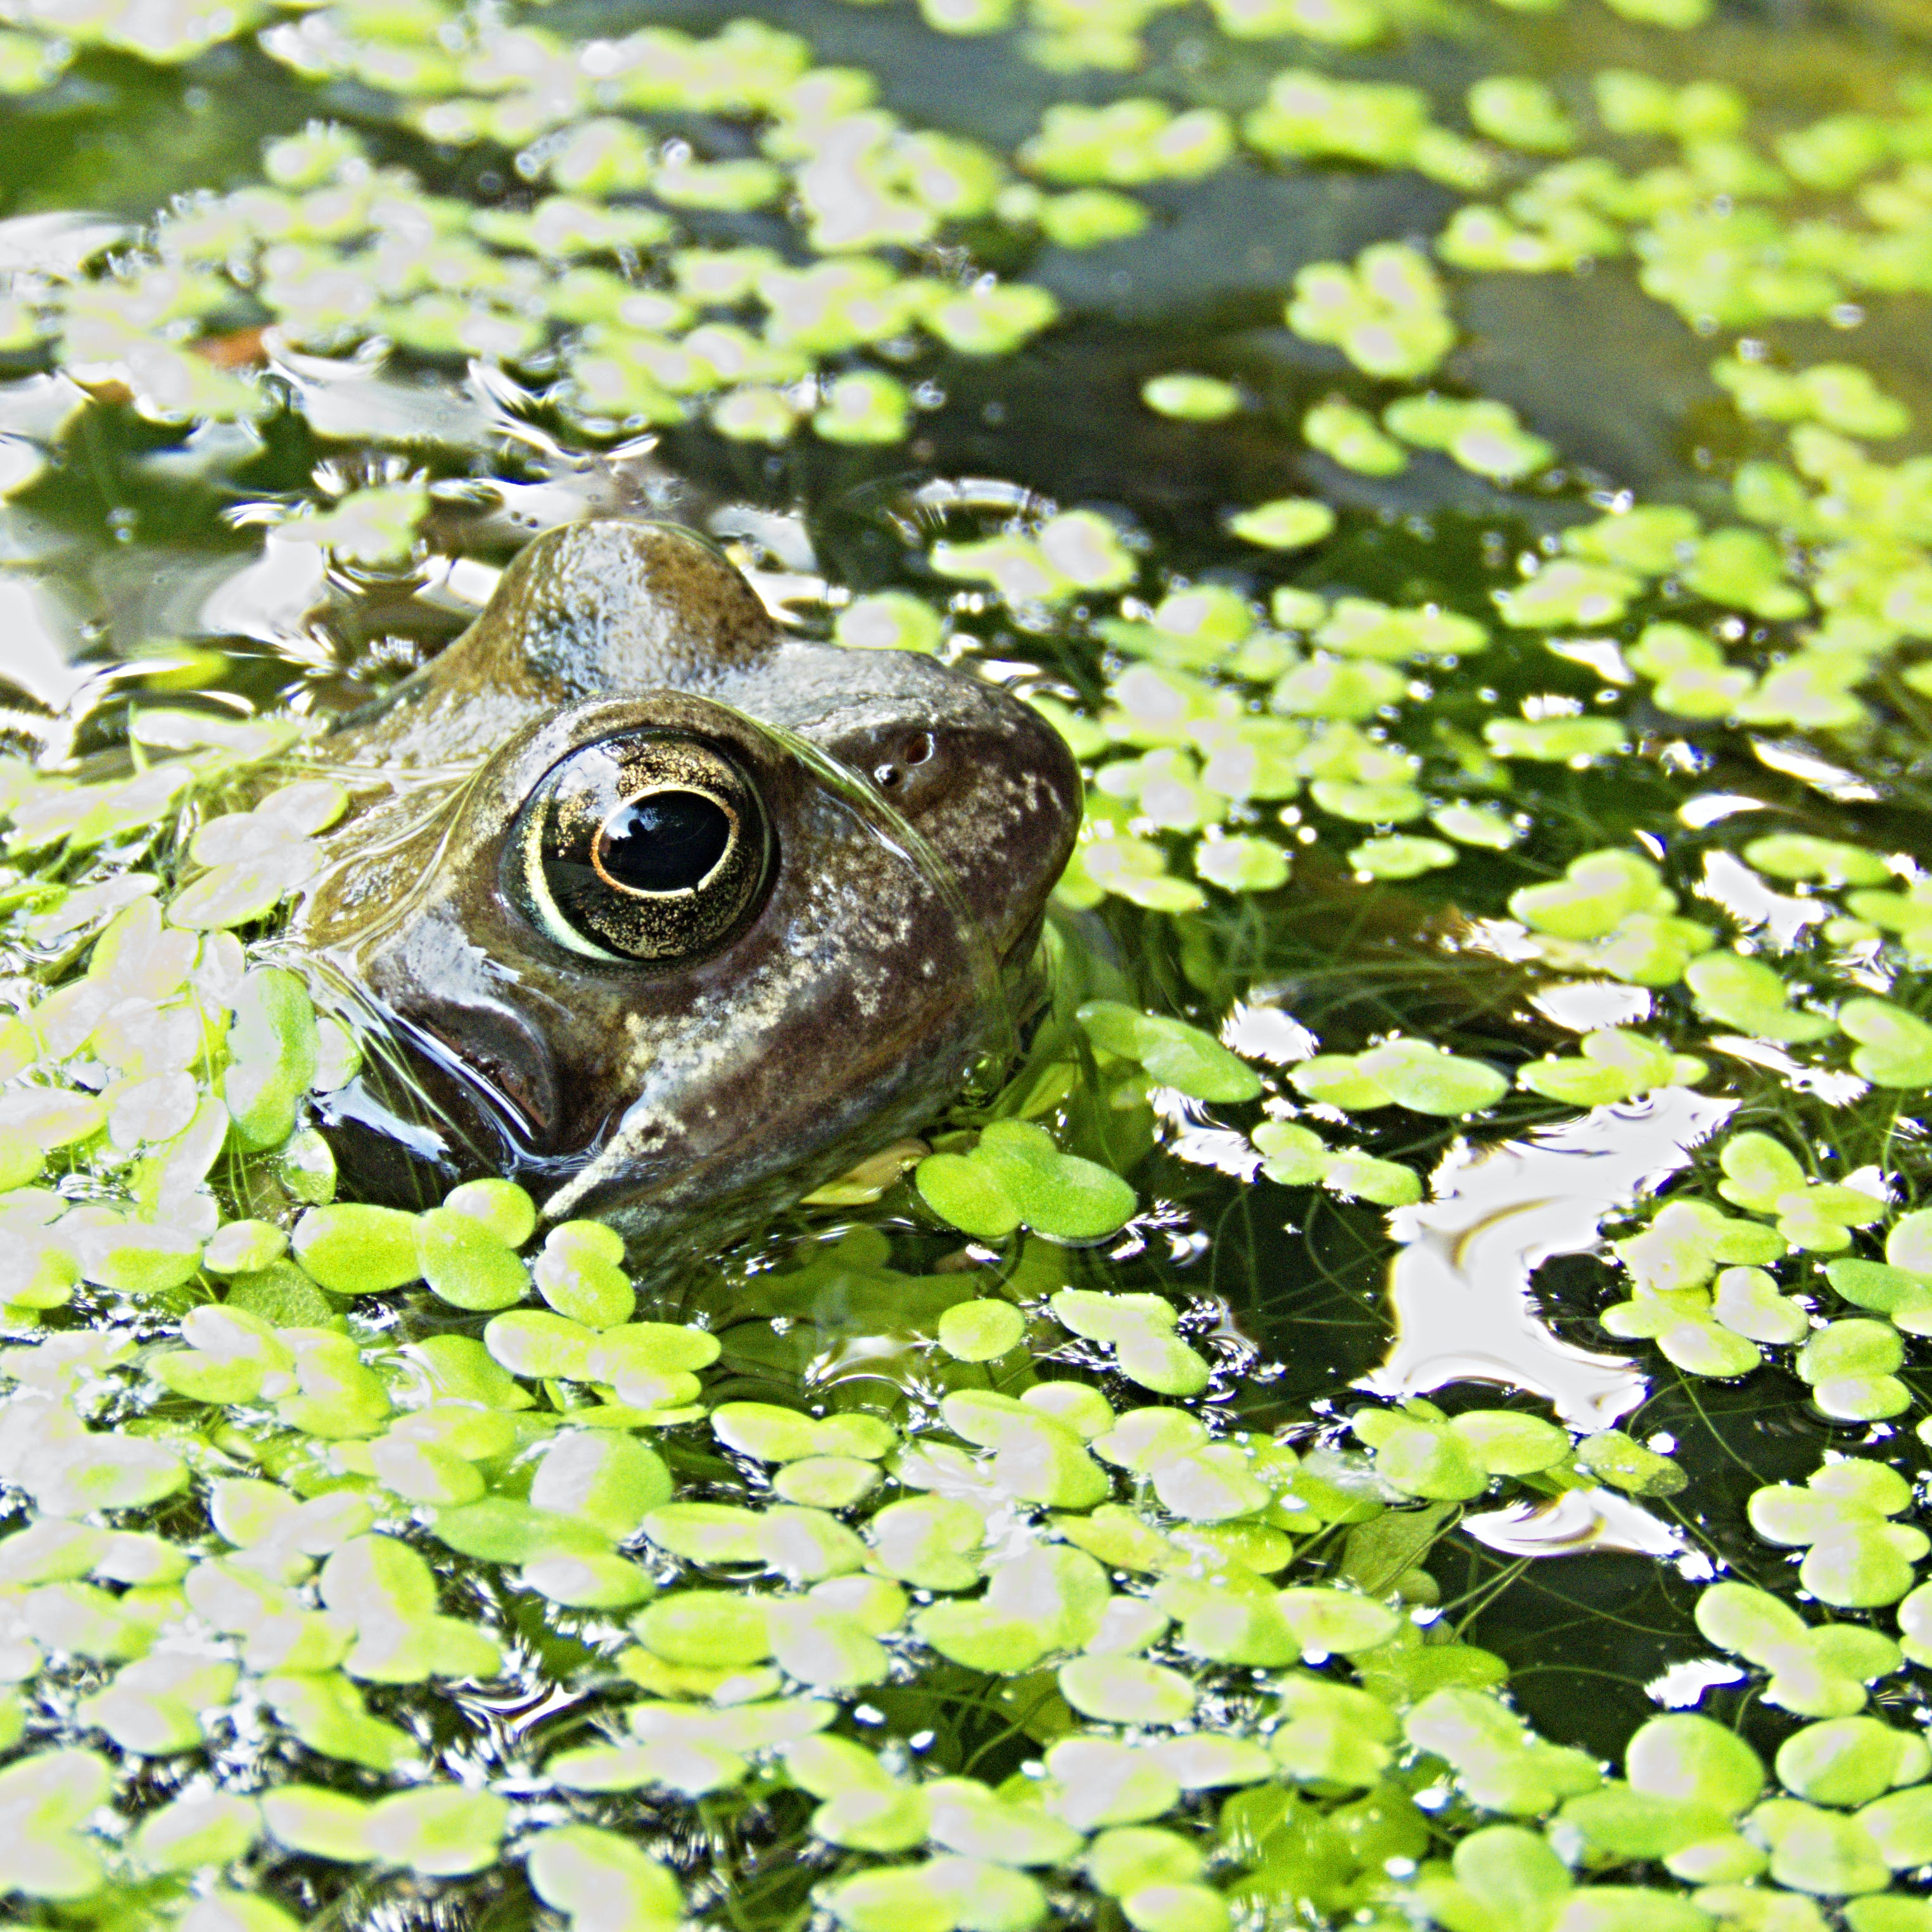 Brown Frog Surrounded by Green Floating Pants on Water